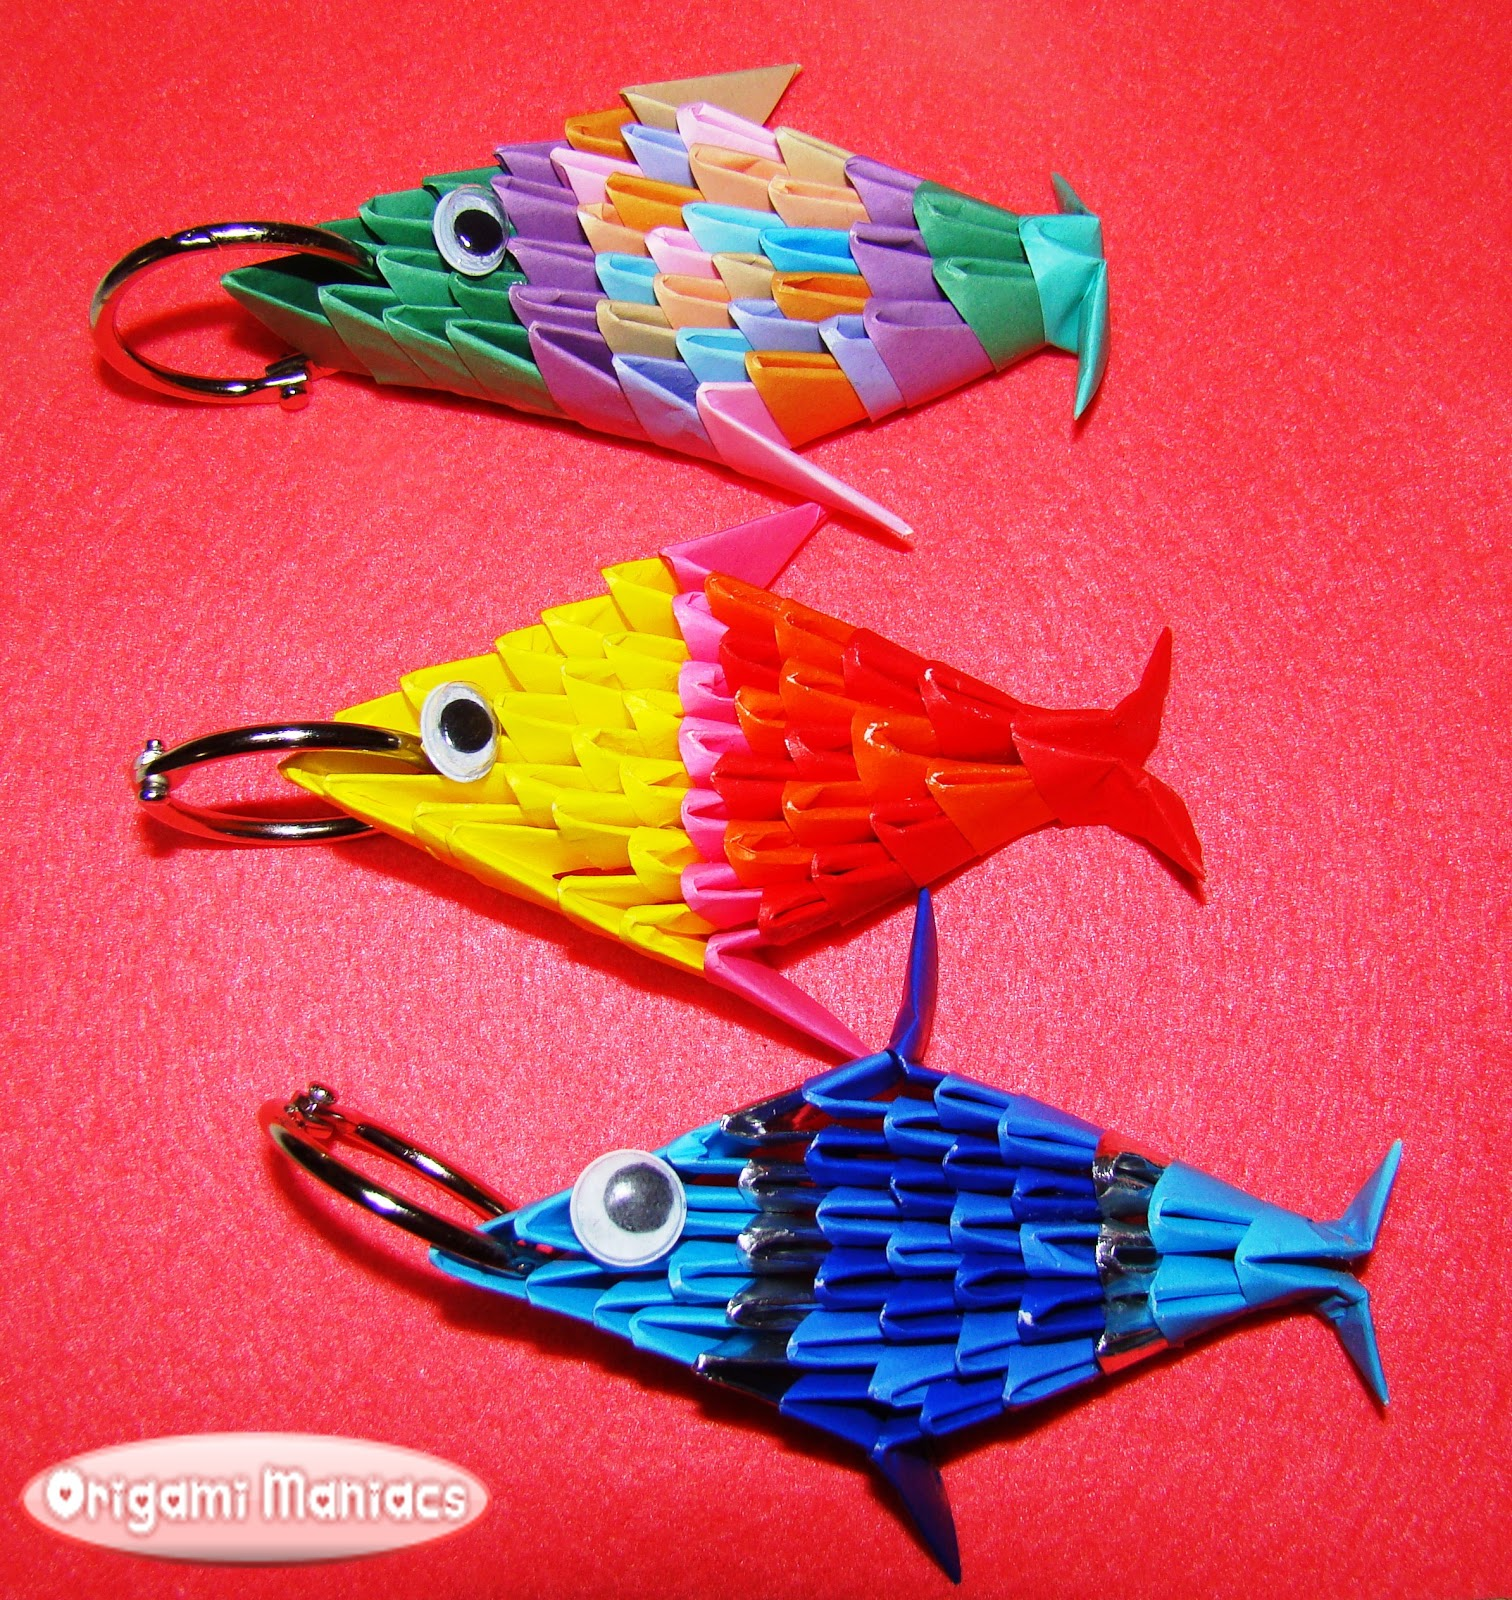 Origami maniacs 3d origami keyholder fish for How to make fish